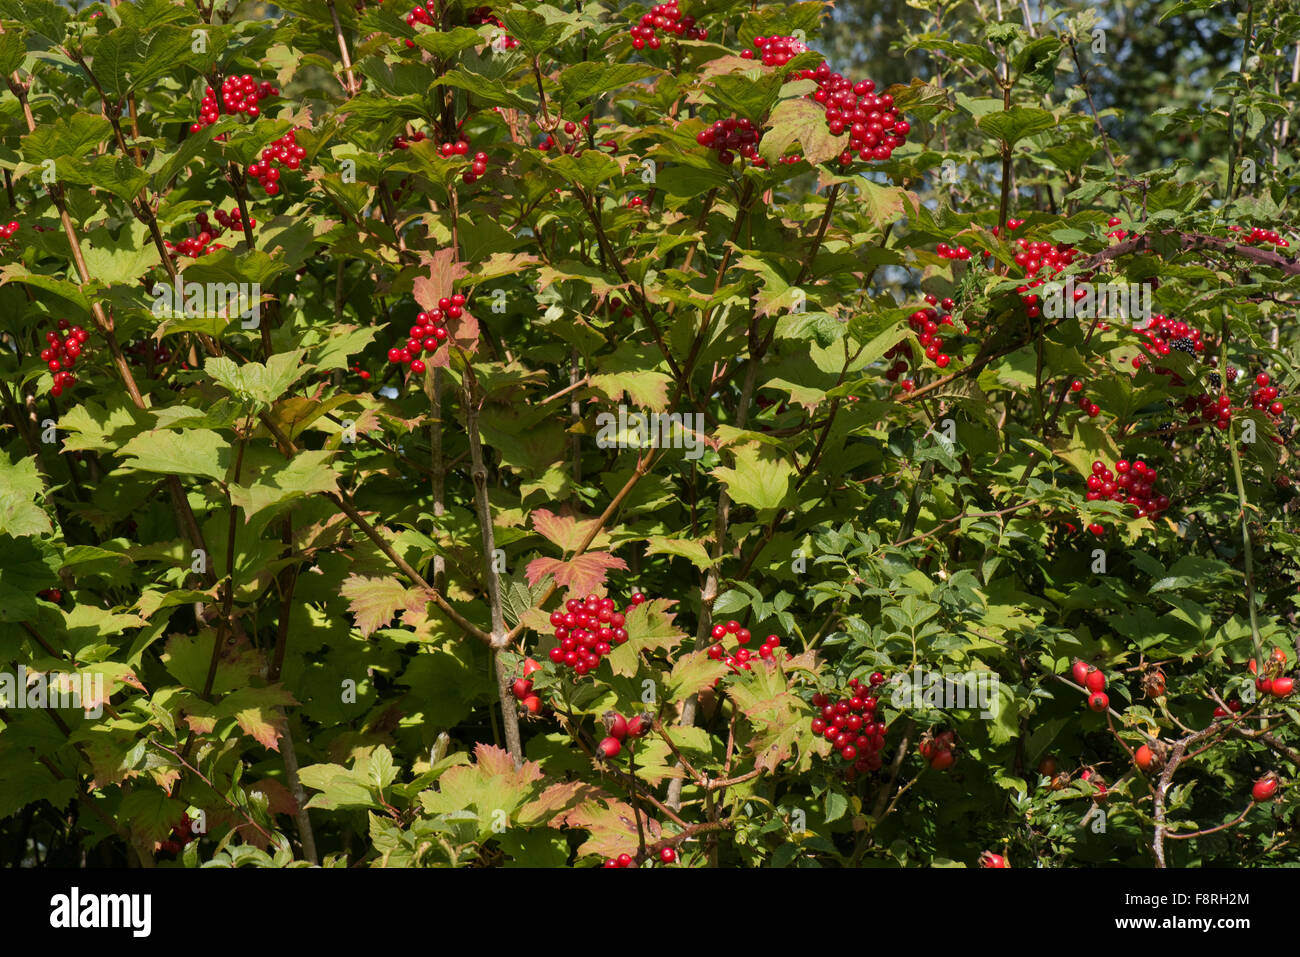 reife rote beeren auf einem guelder rose baum viburnum opulus in eine hecke im fr hherbst. Black Bedroom Furniture Sets. Home Design Ideas